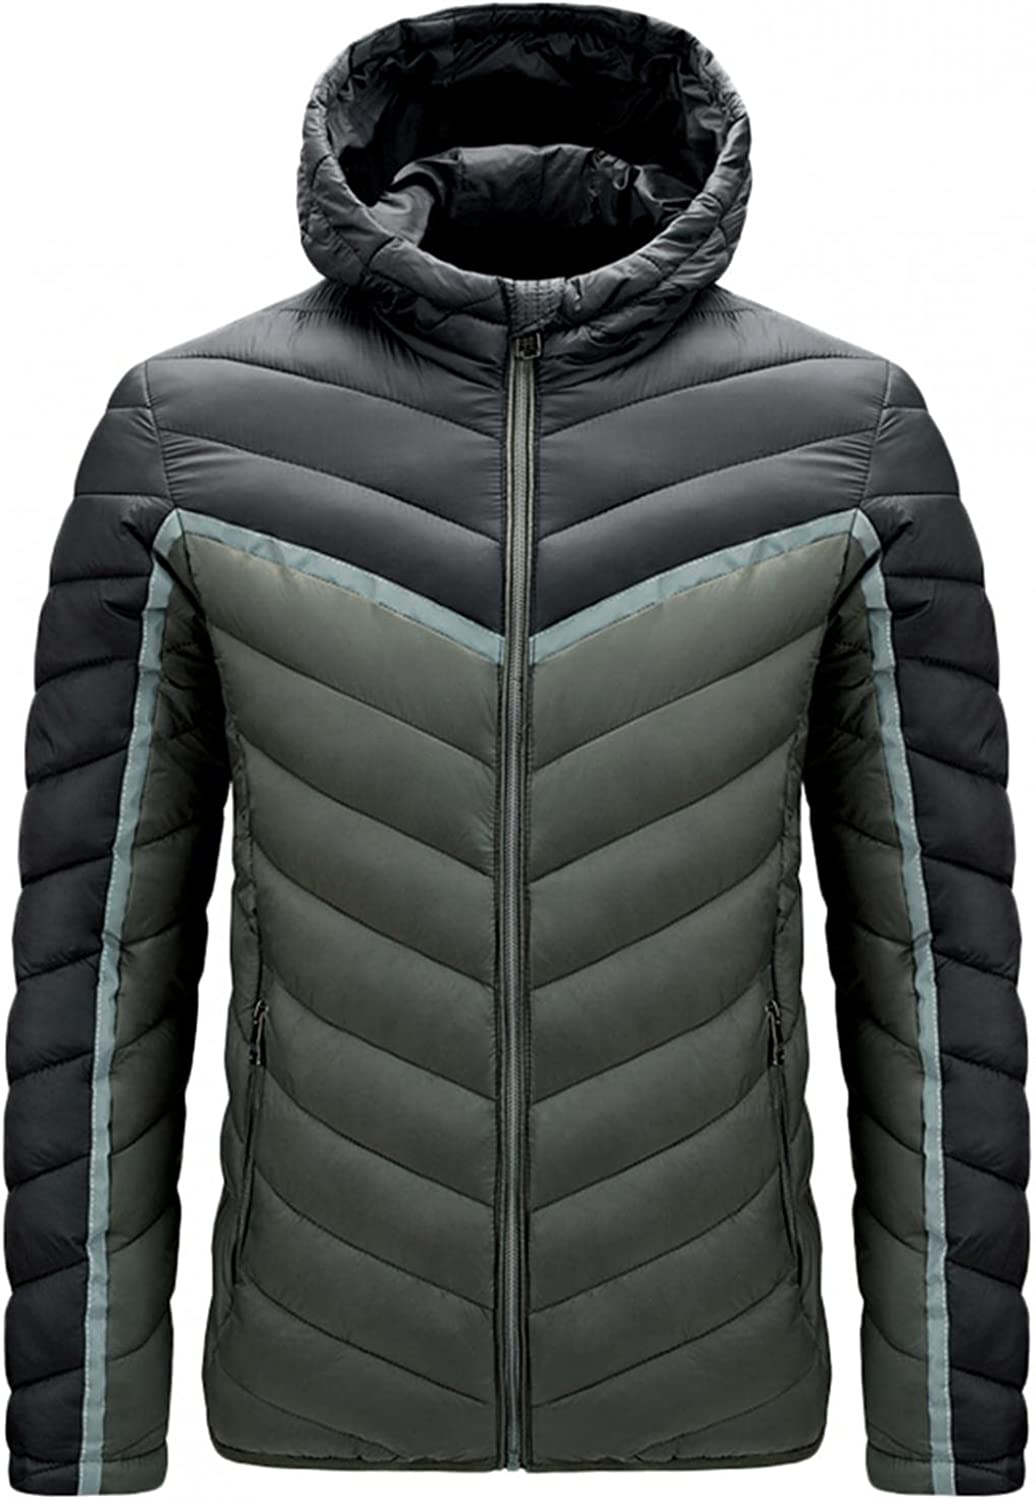 XUNFUN Men's Packable Down Jackets Plus Size Lightweight Insulated Color Block Hooded Winter Puffer Coat Water Resistant